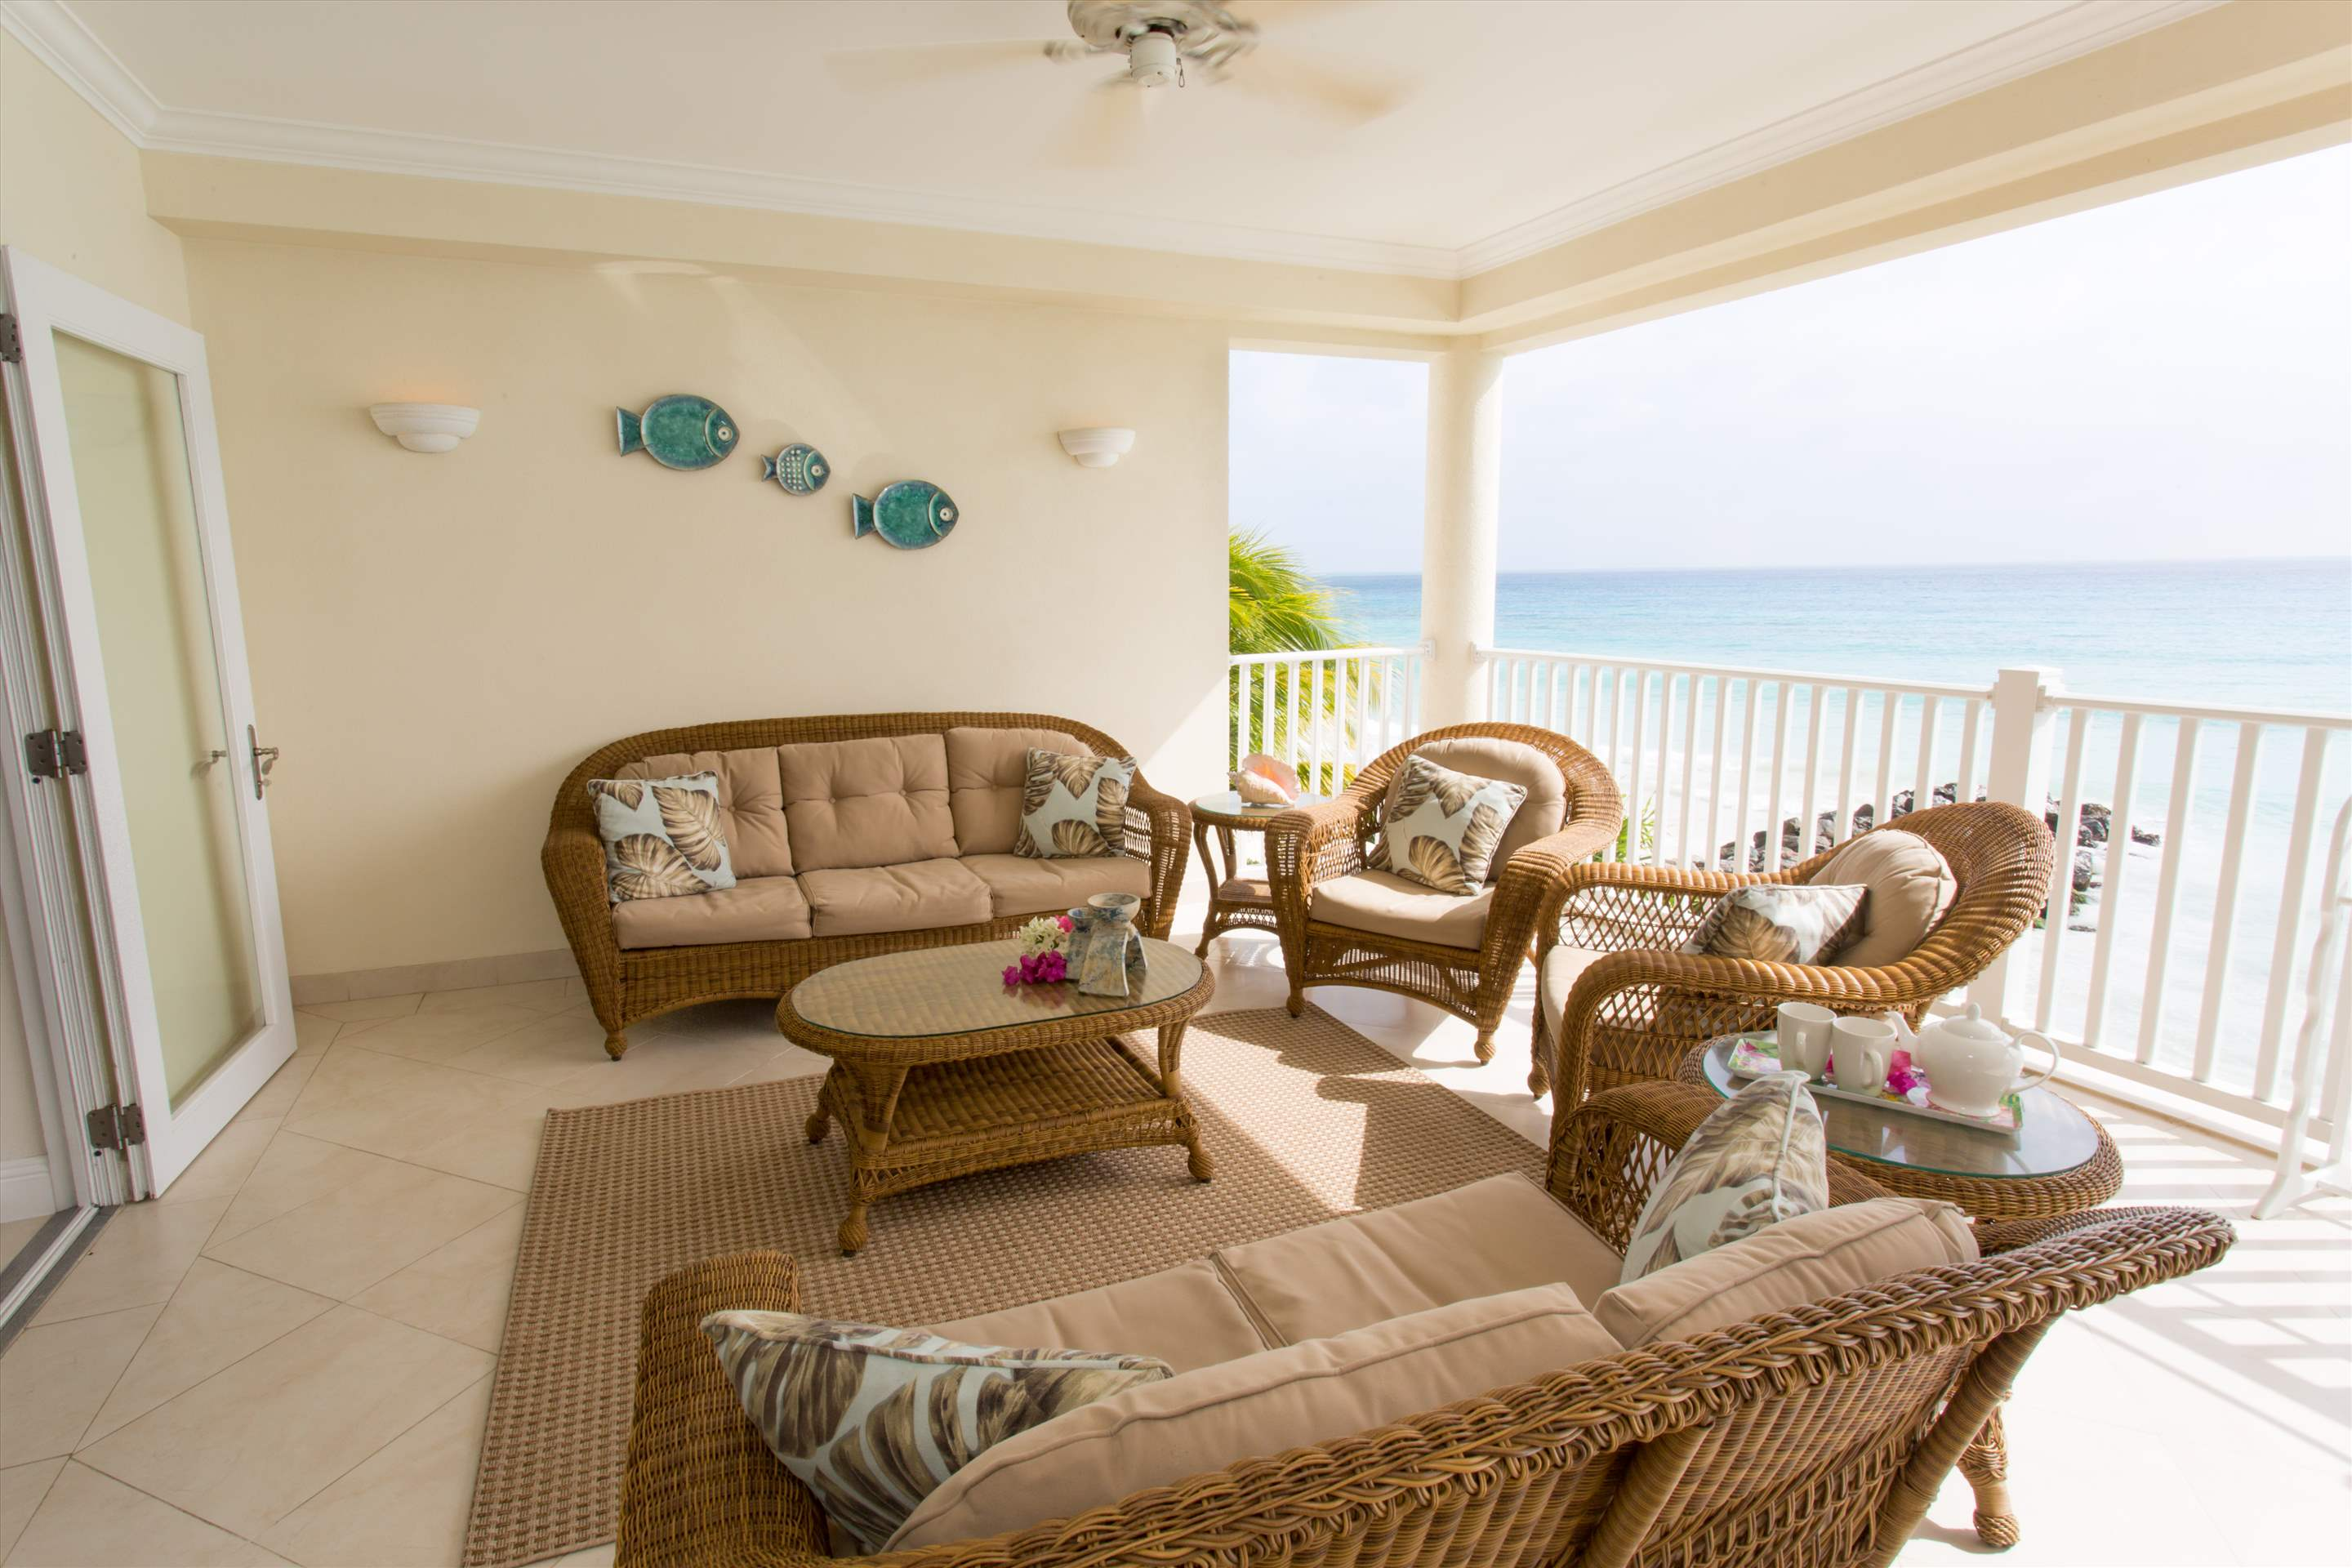 Sandy Hook 21, 2 bedroom, 2 bedroom villa in St. Lawrence Gap & South Coast, Barbados Photo #3